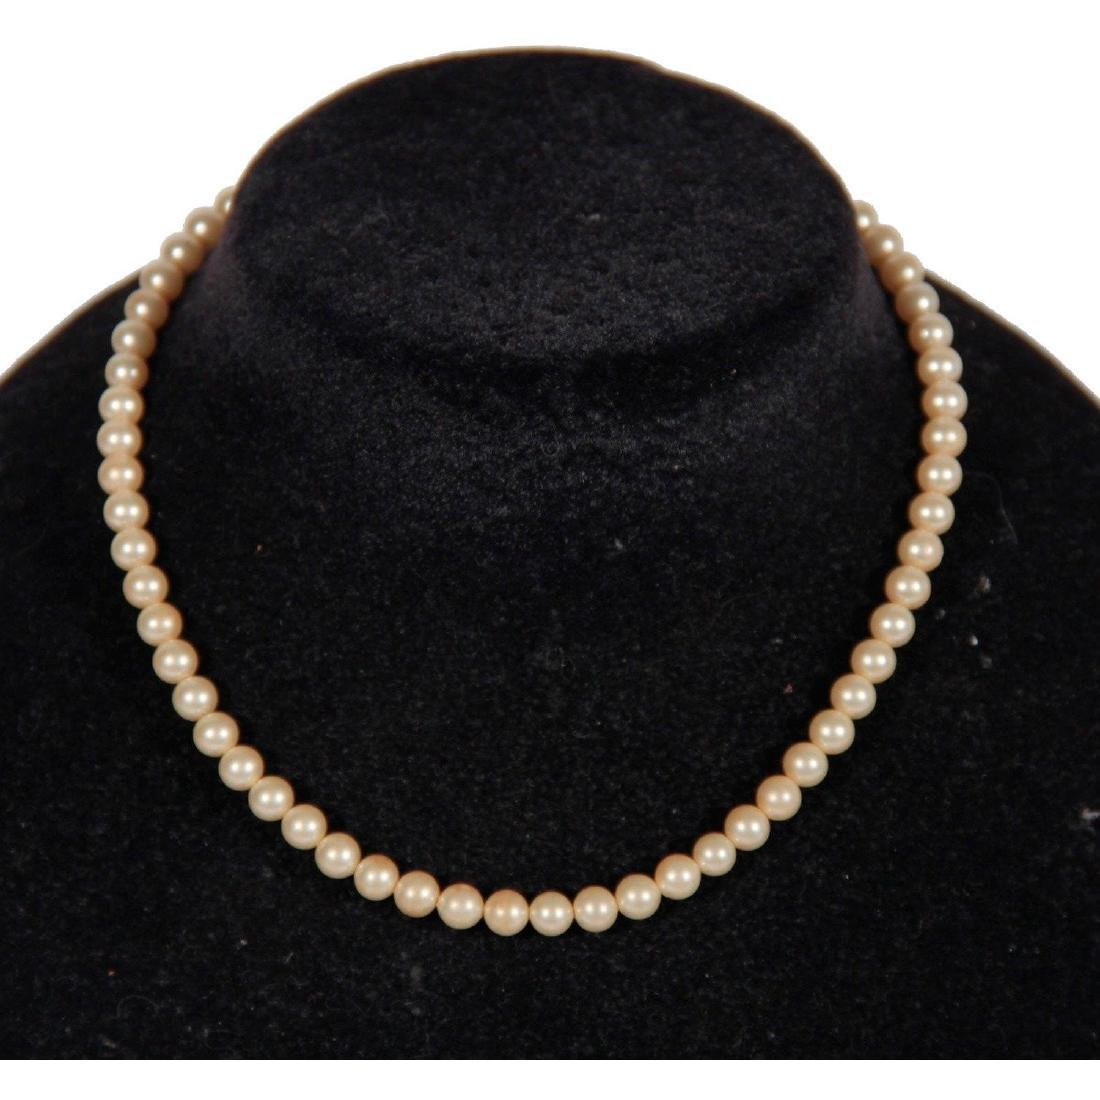 Trifari Vintage Single Strand Faux Pearl Necklace